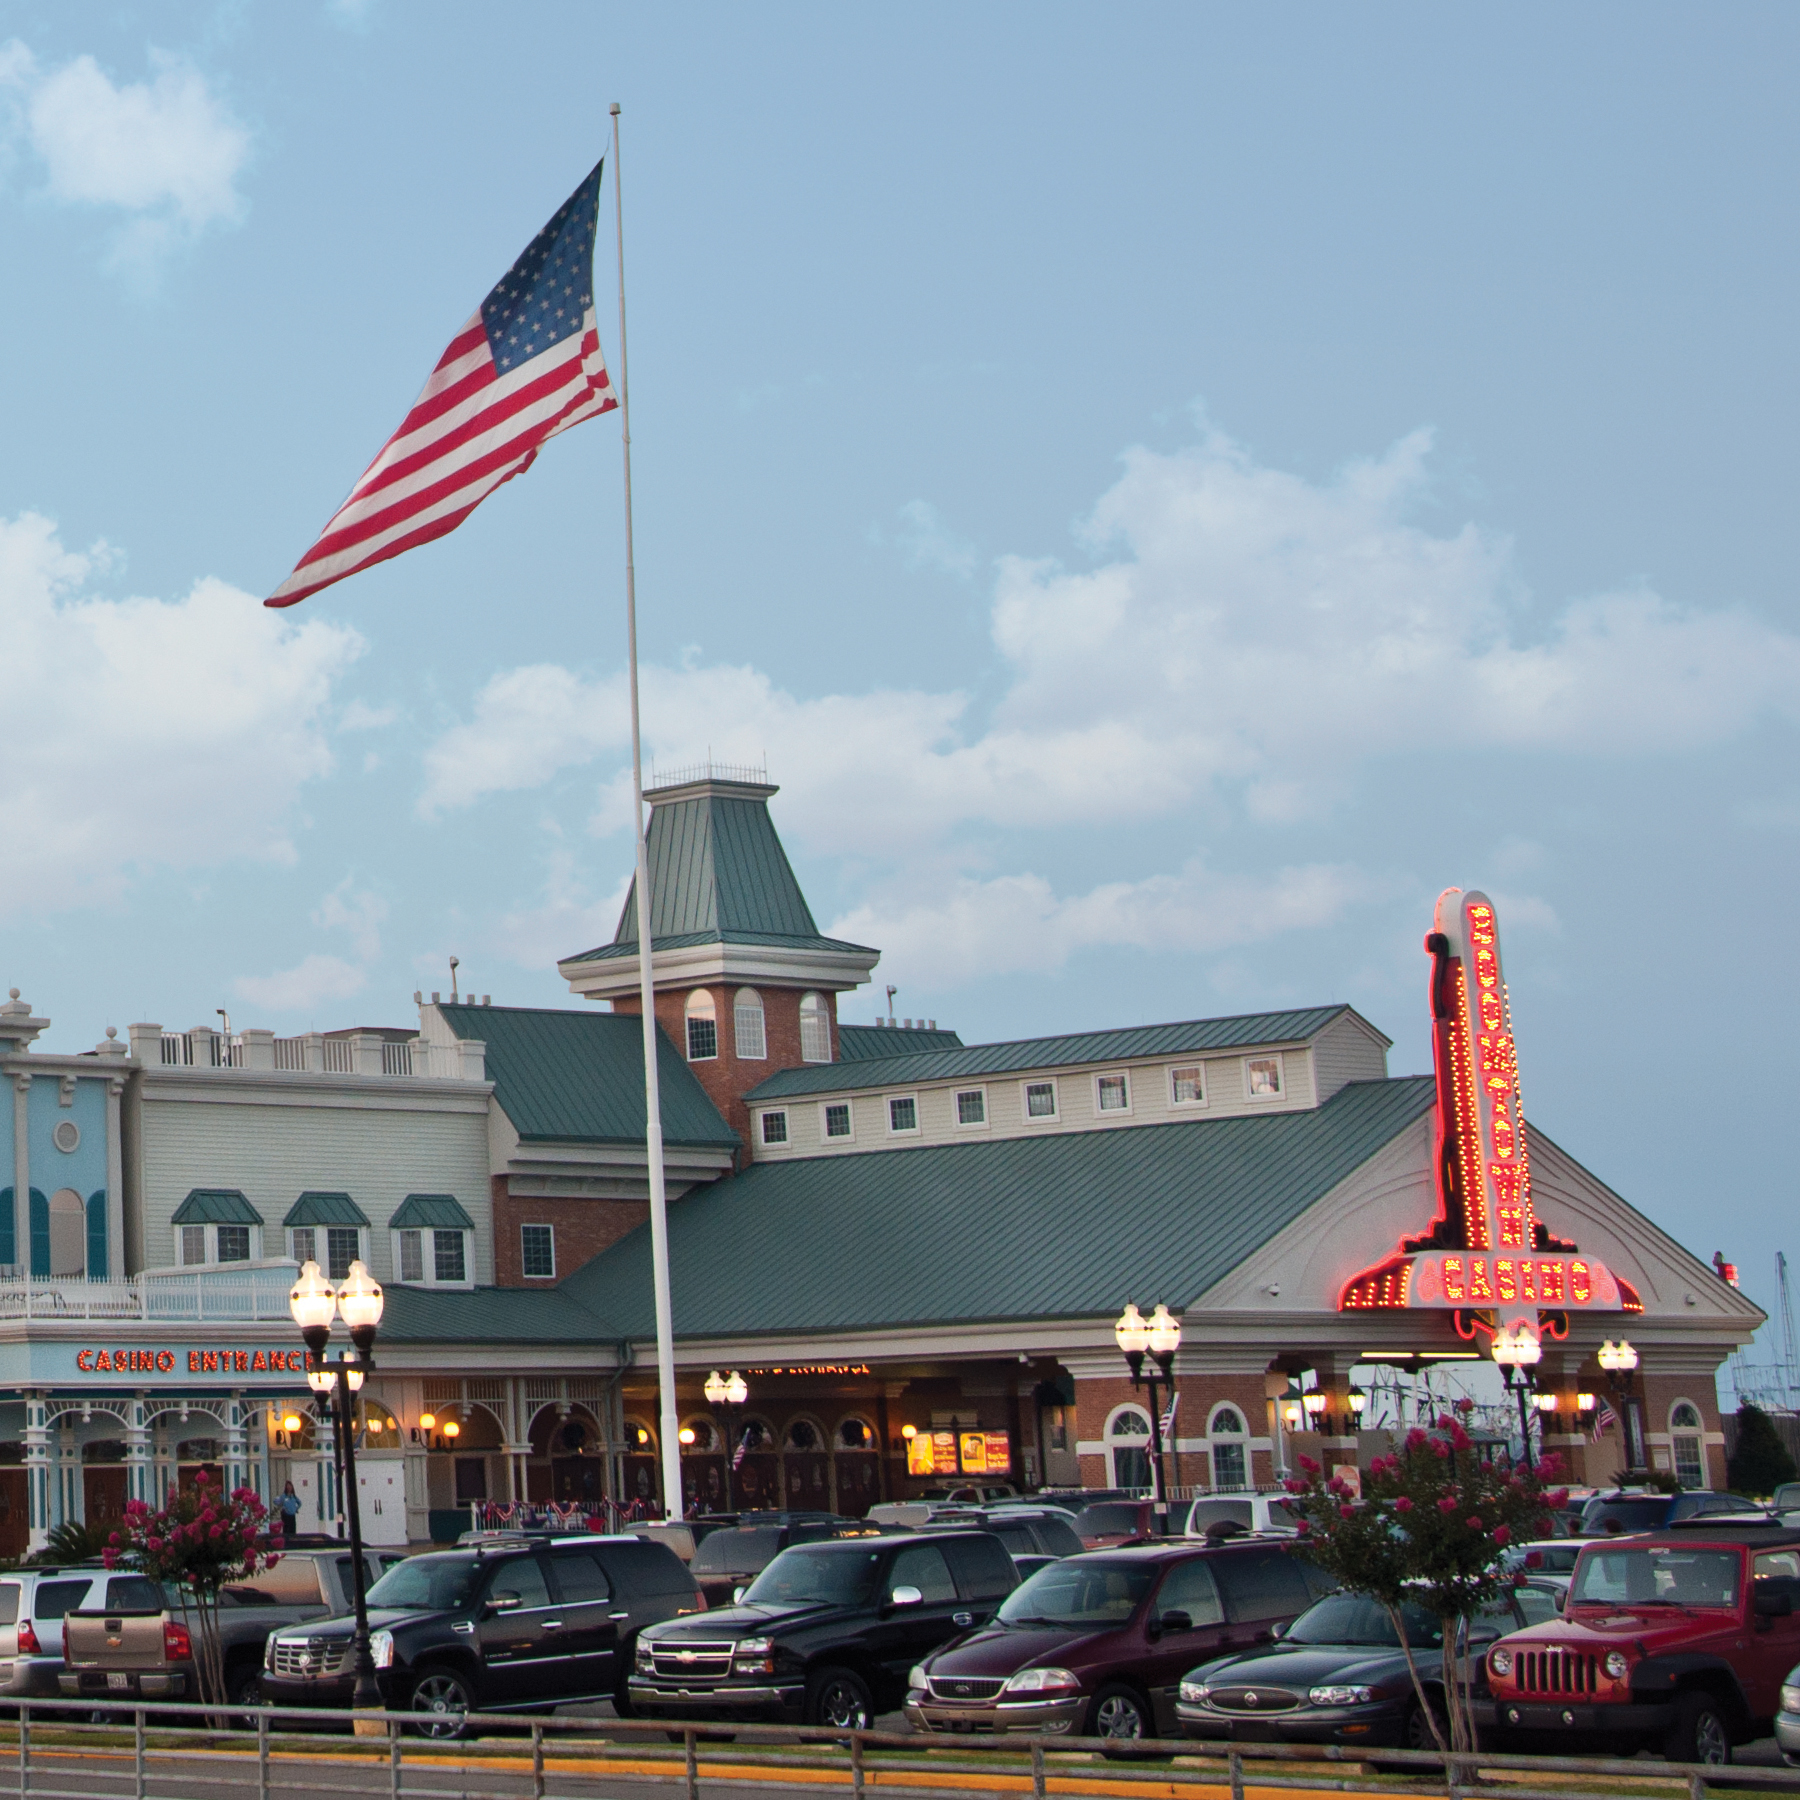 Get in on good times at Boomtown Casino Biloxi